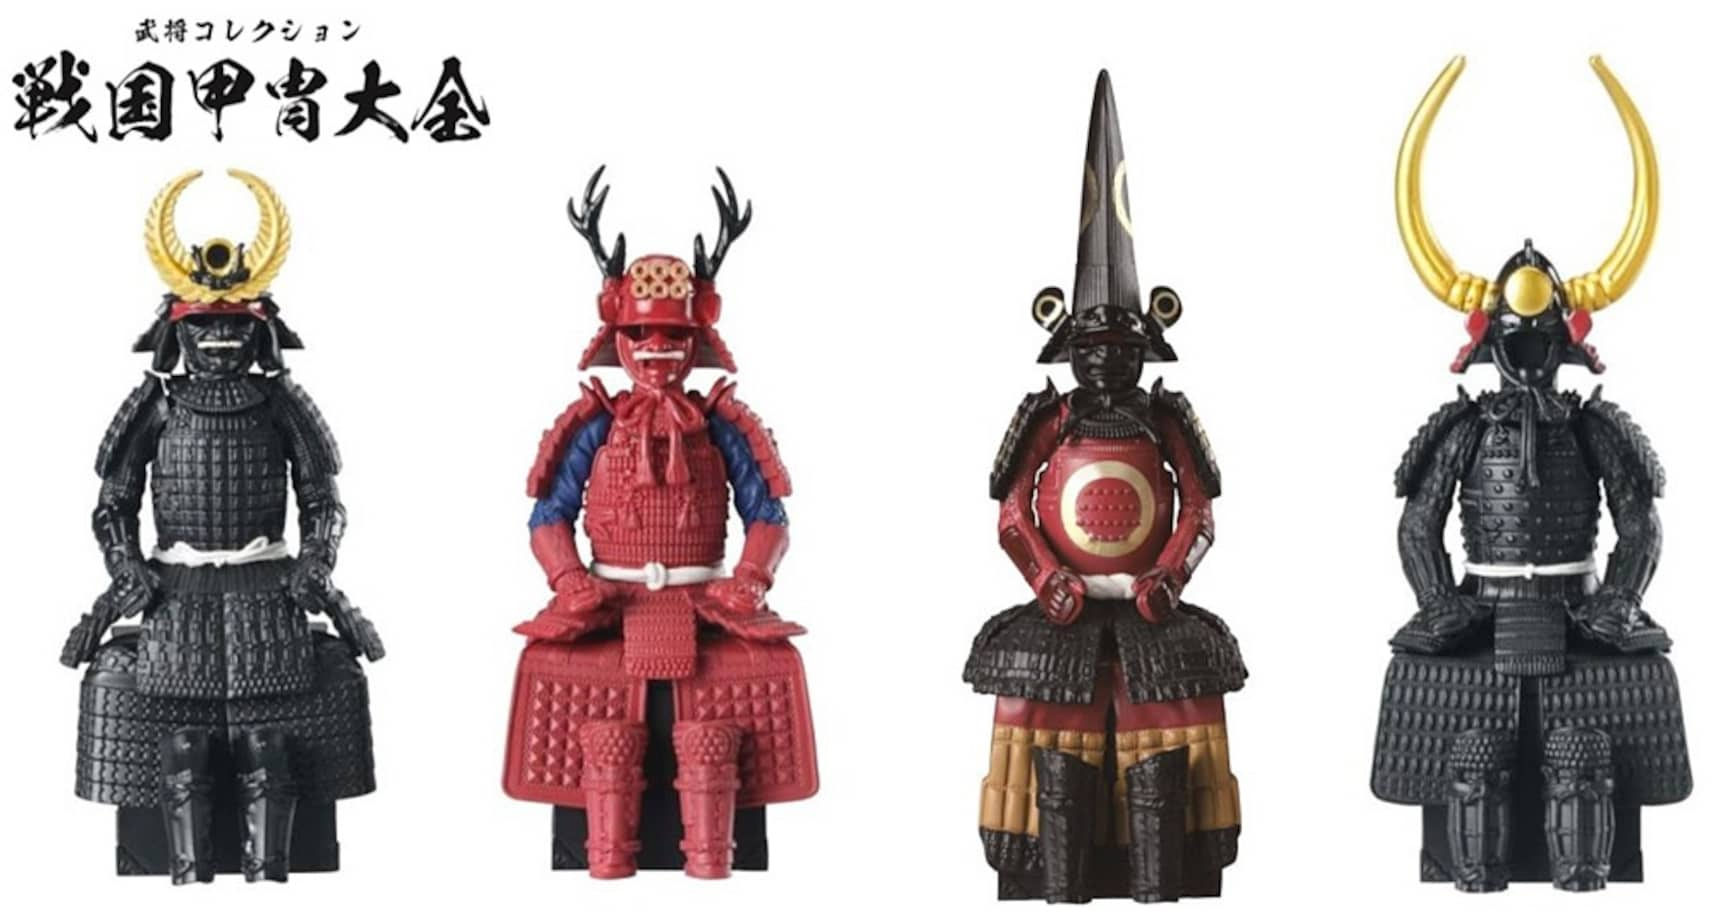 Get 4 Famous Warriors in 'Gachapon' Form